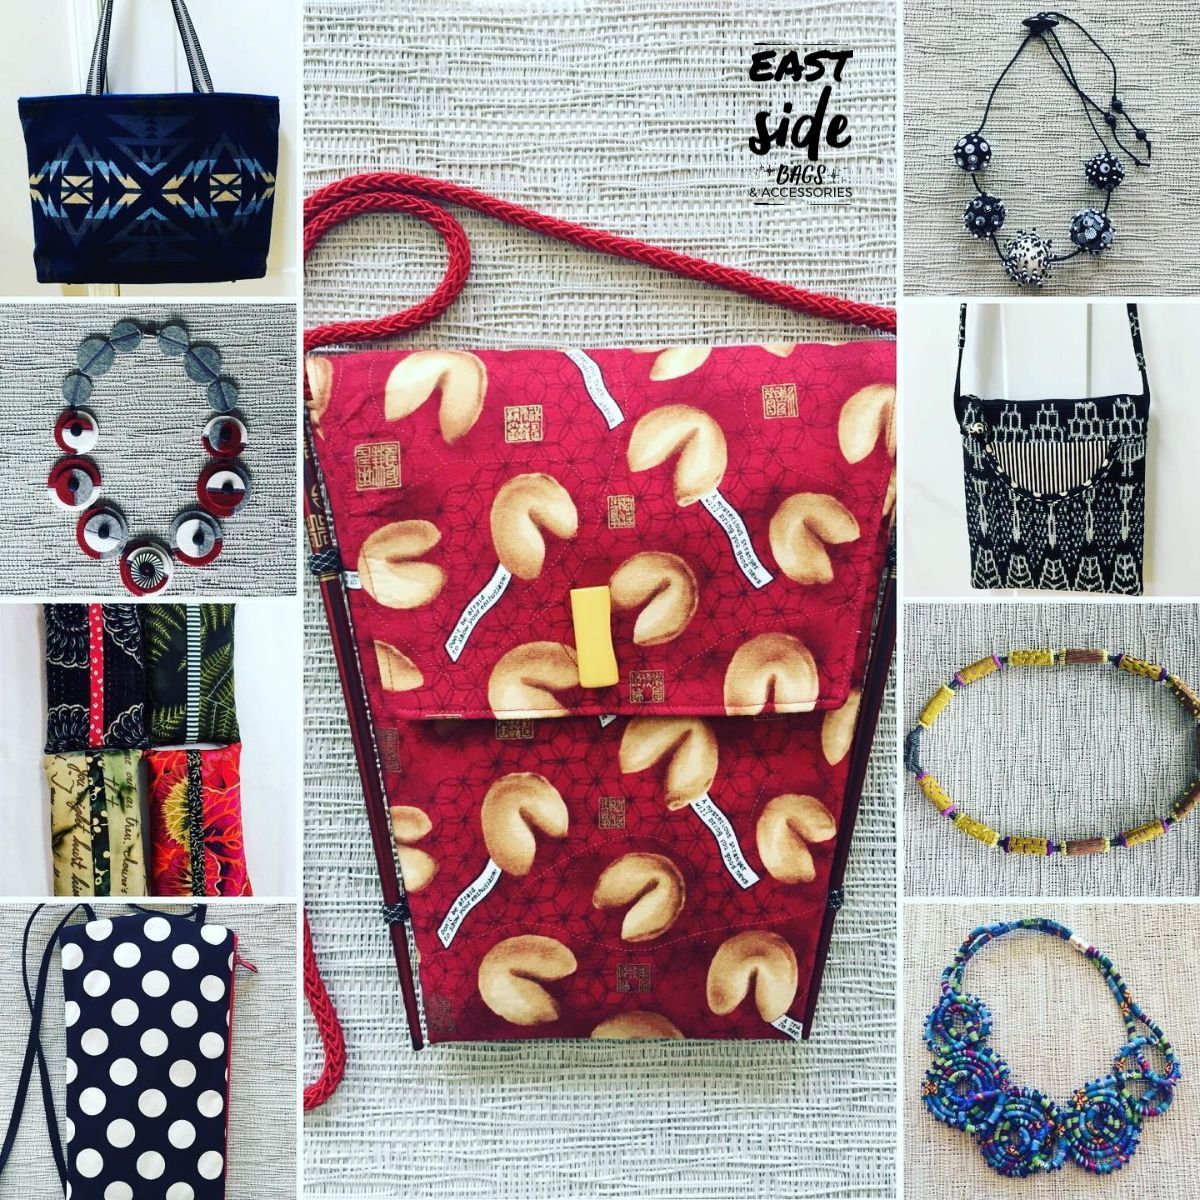 Shop East Side Bags & Accessories